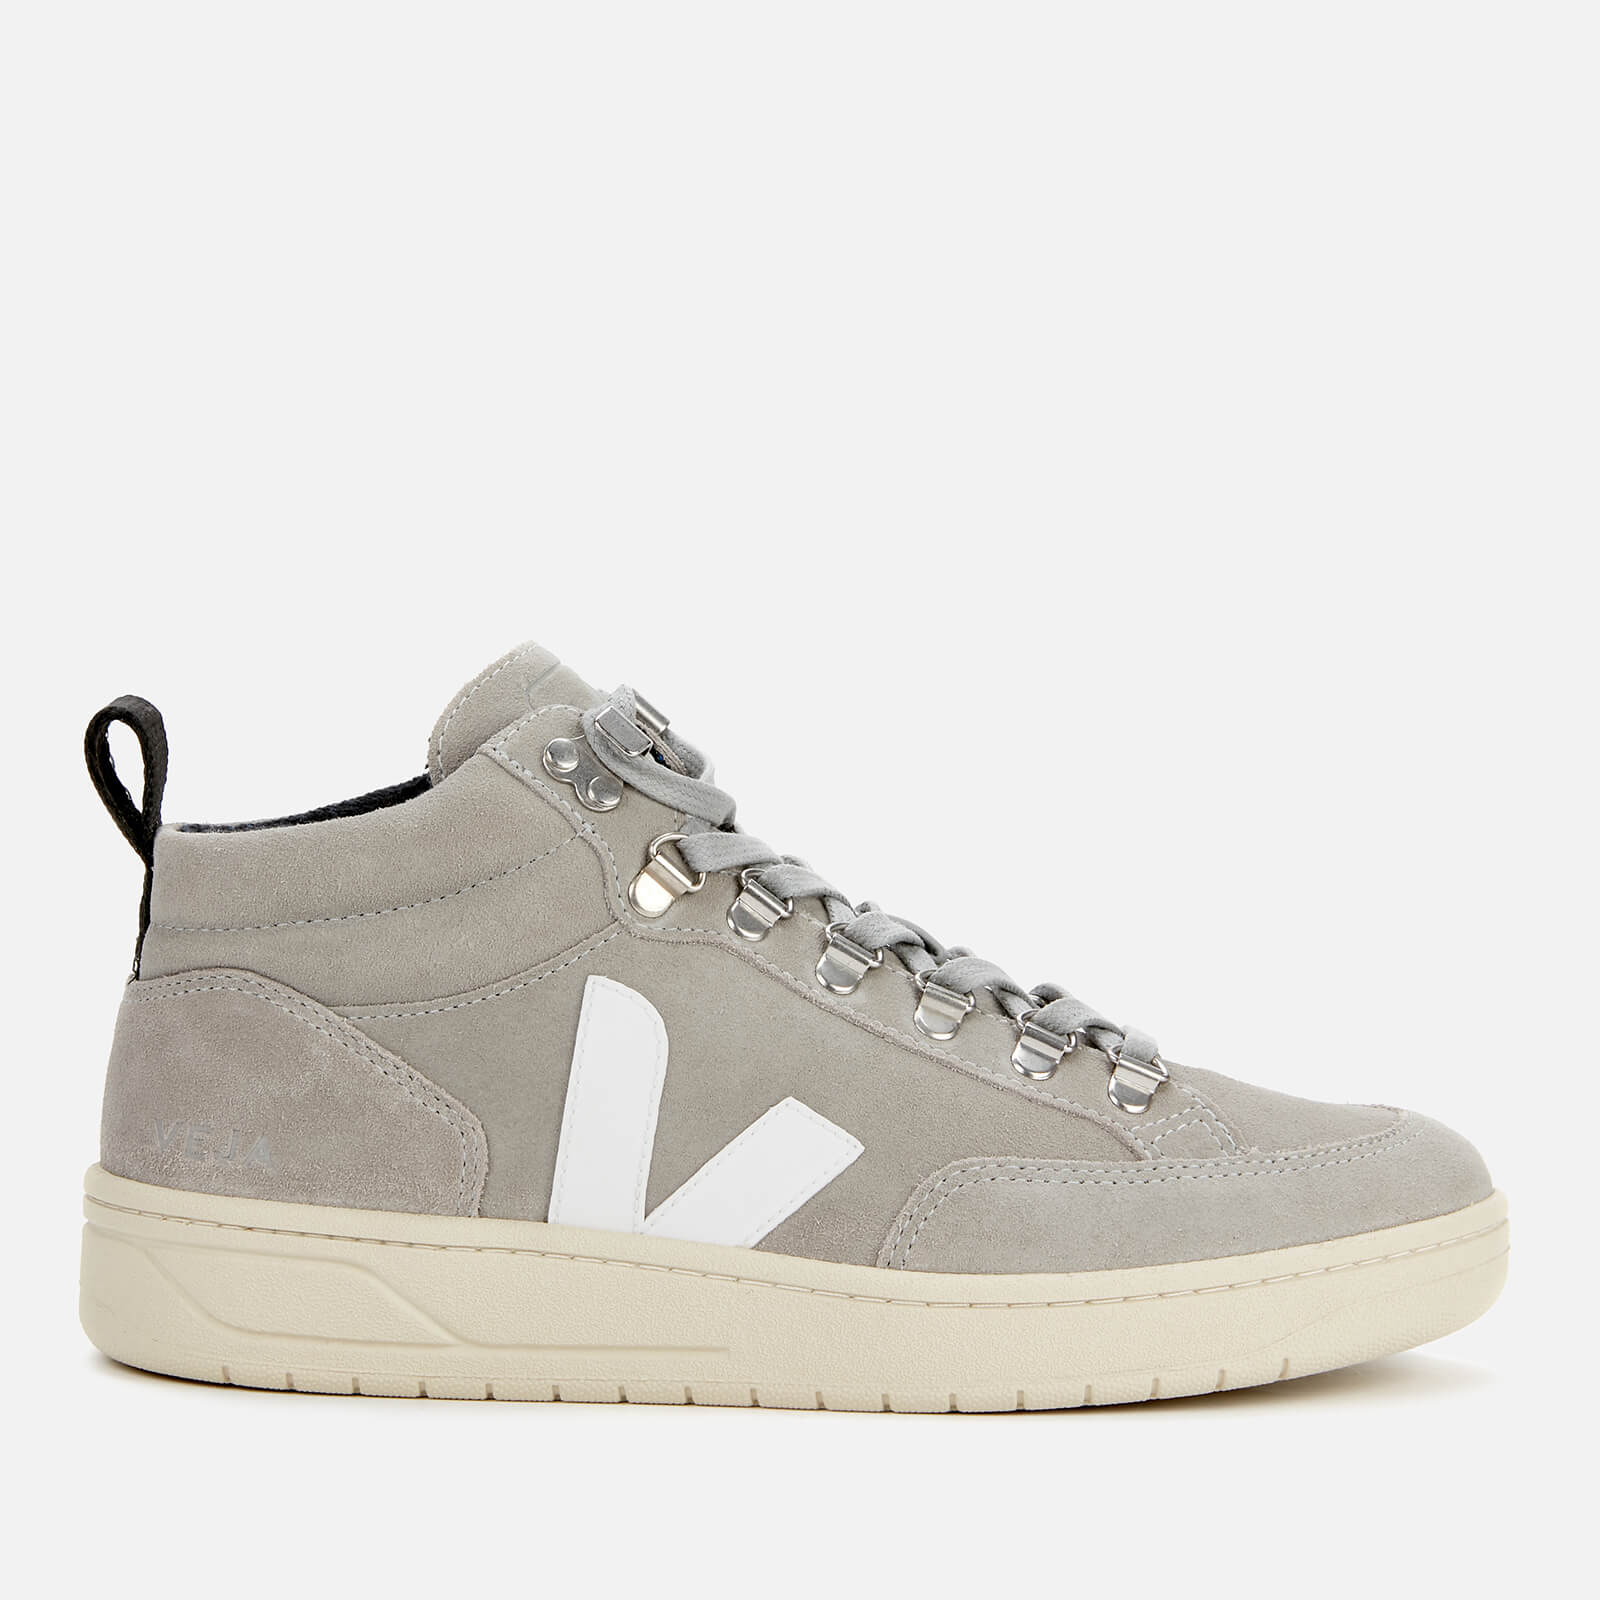 Veja Women's Roraima Suede Hiking Style Boots - Oxford Grey/White - Uk 2